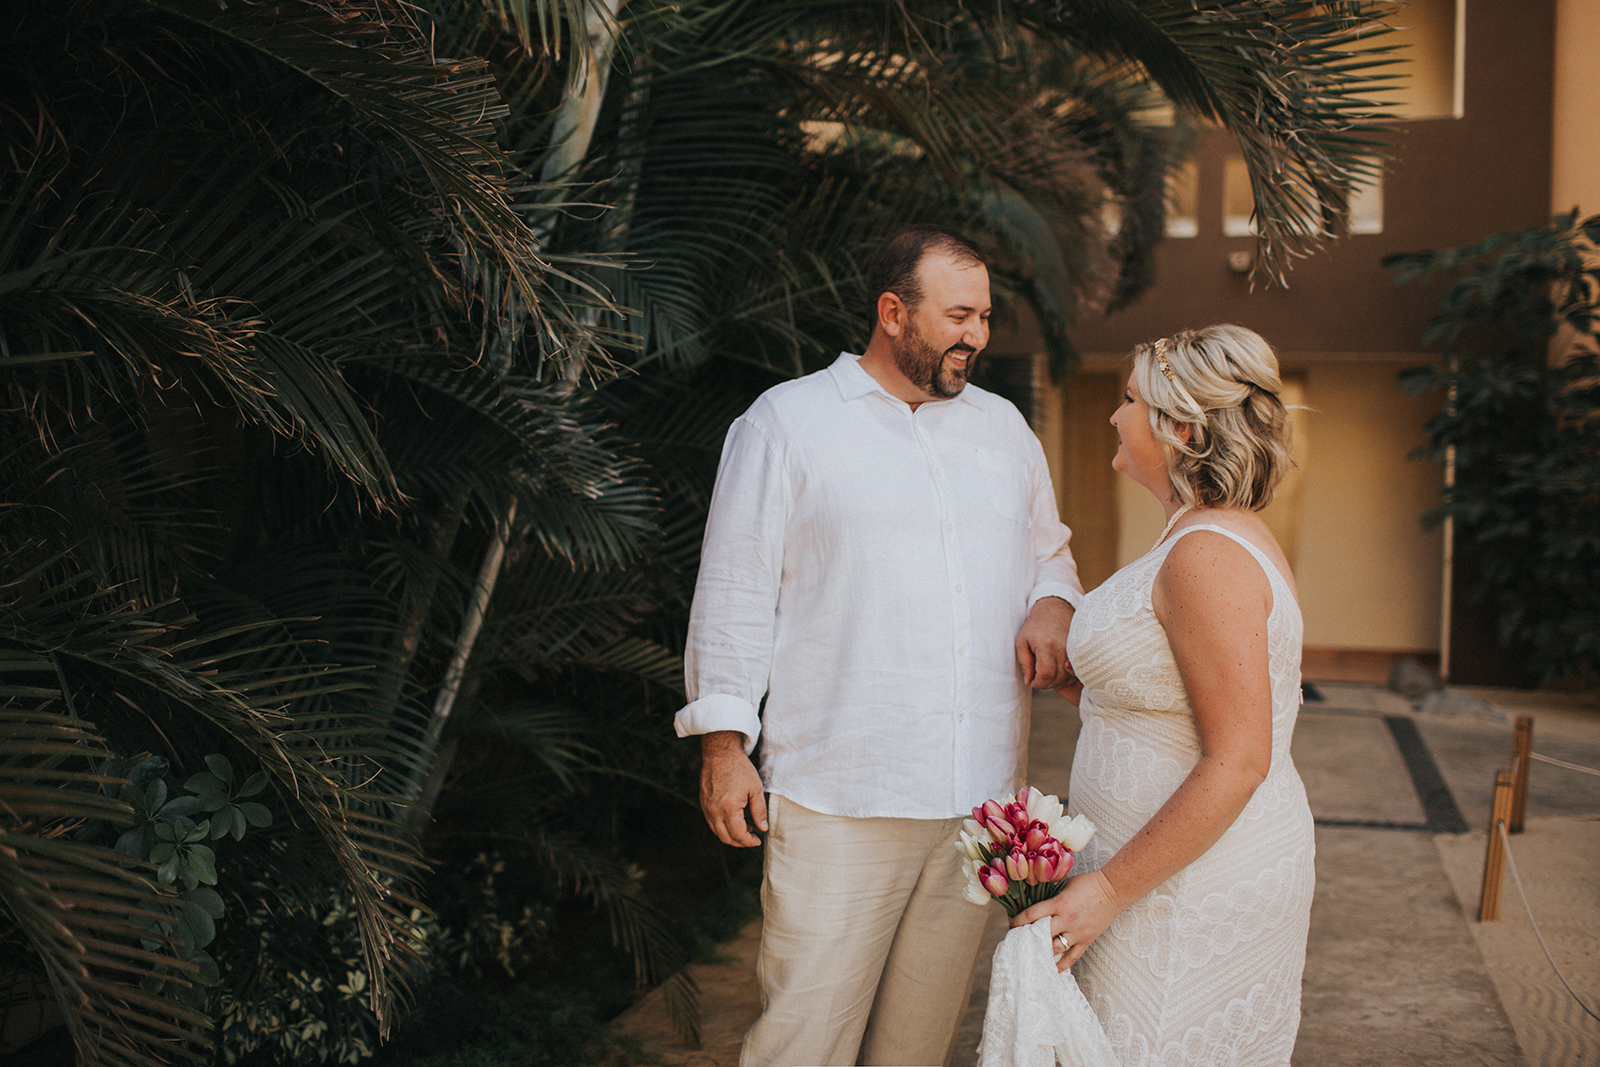 myrtle-and-moss-photography-meghan-and-chad-cabo-wedding-blog-post39